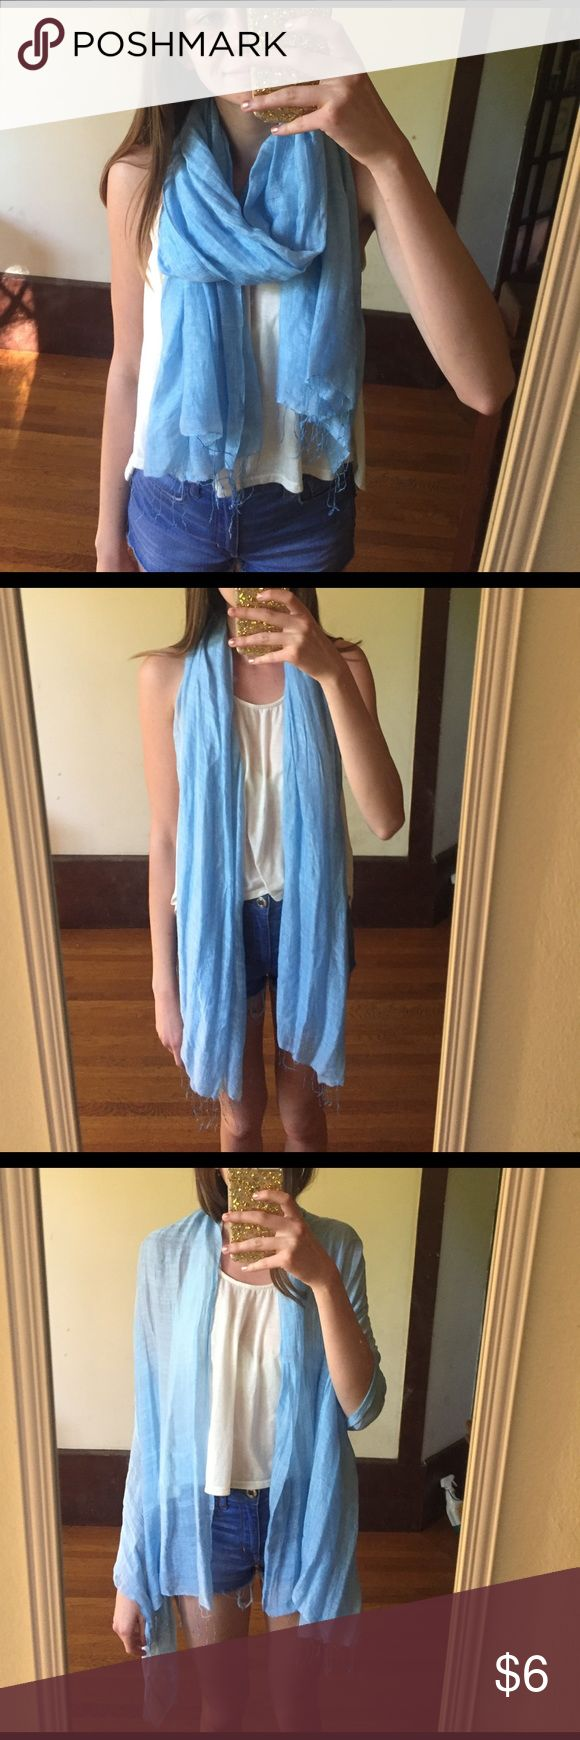 Light Blue Silk Scarf Sky blue real silk scarf. Very lightweight and perfect for spring and summer. Great for traveling, can pack small Accessories Scarves & Wraps